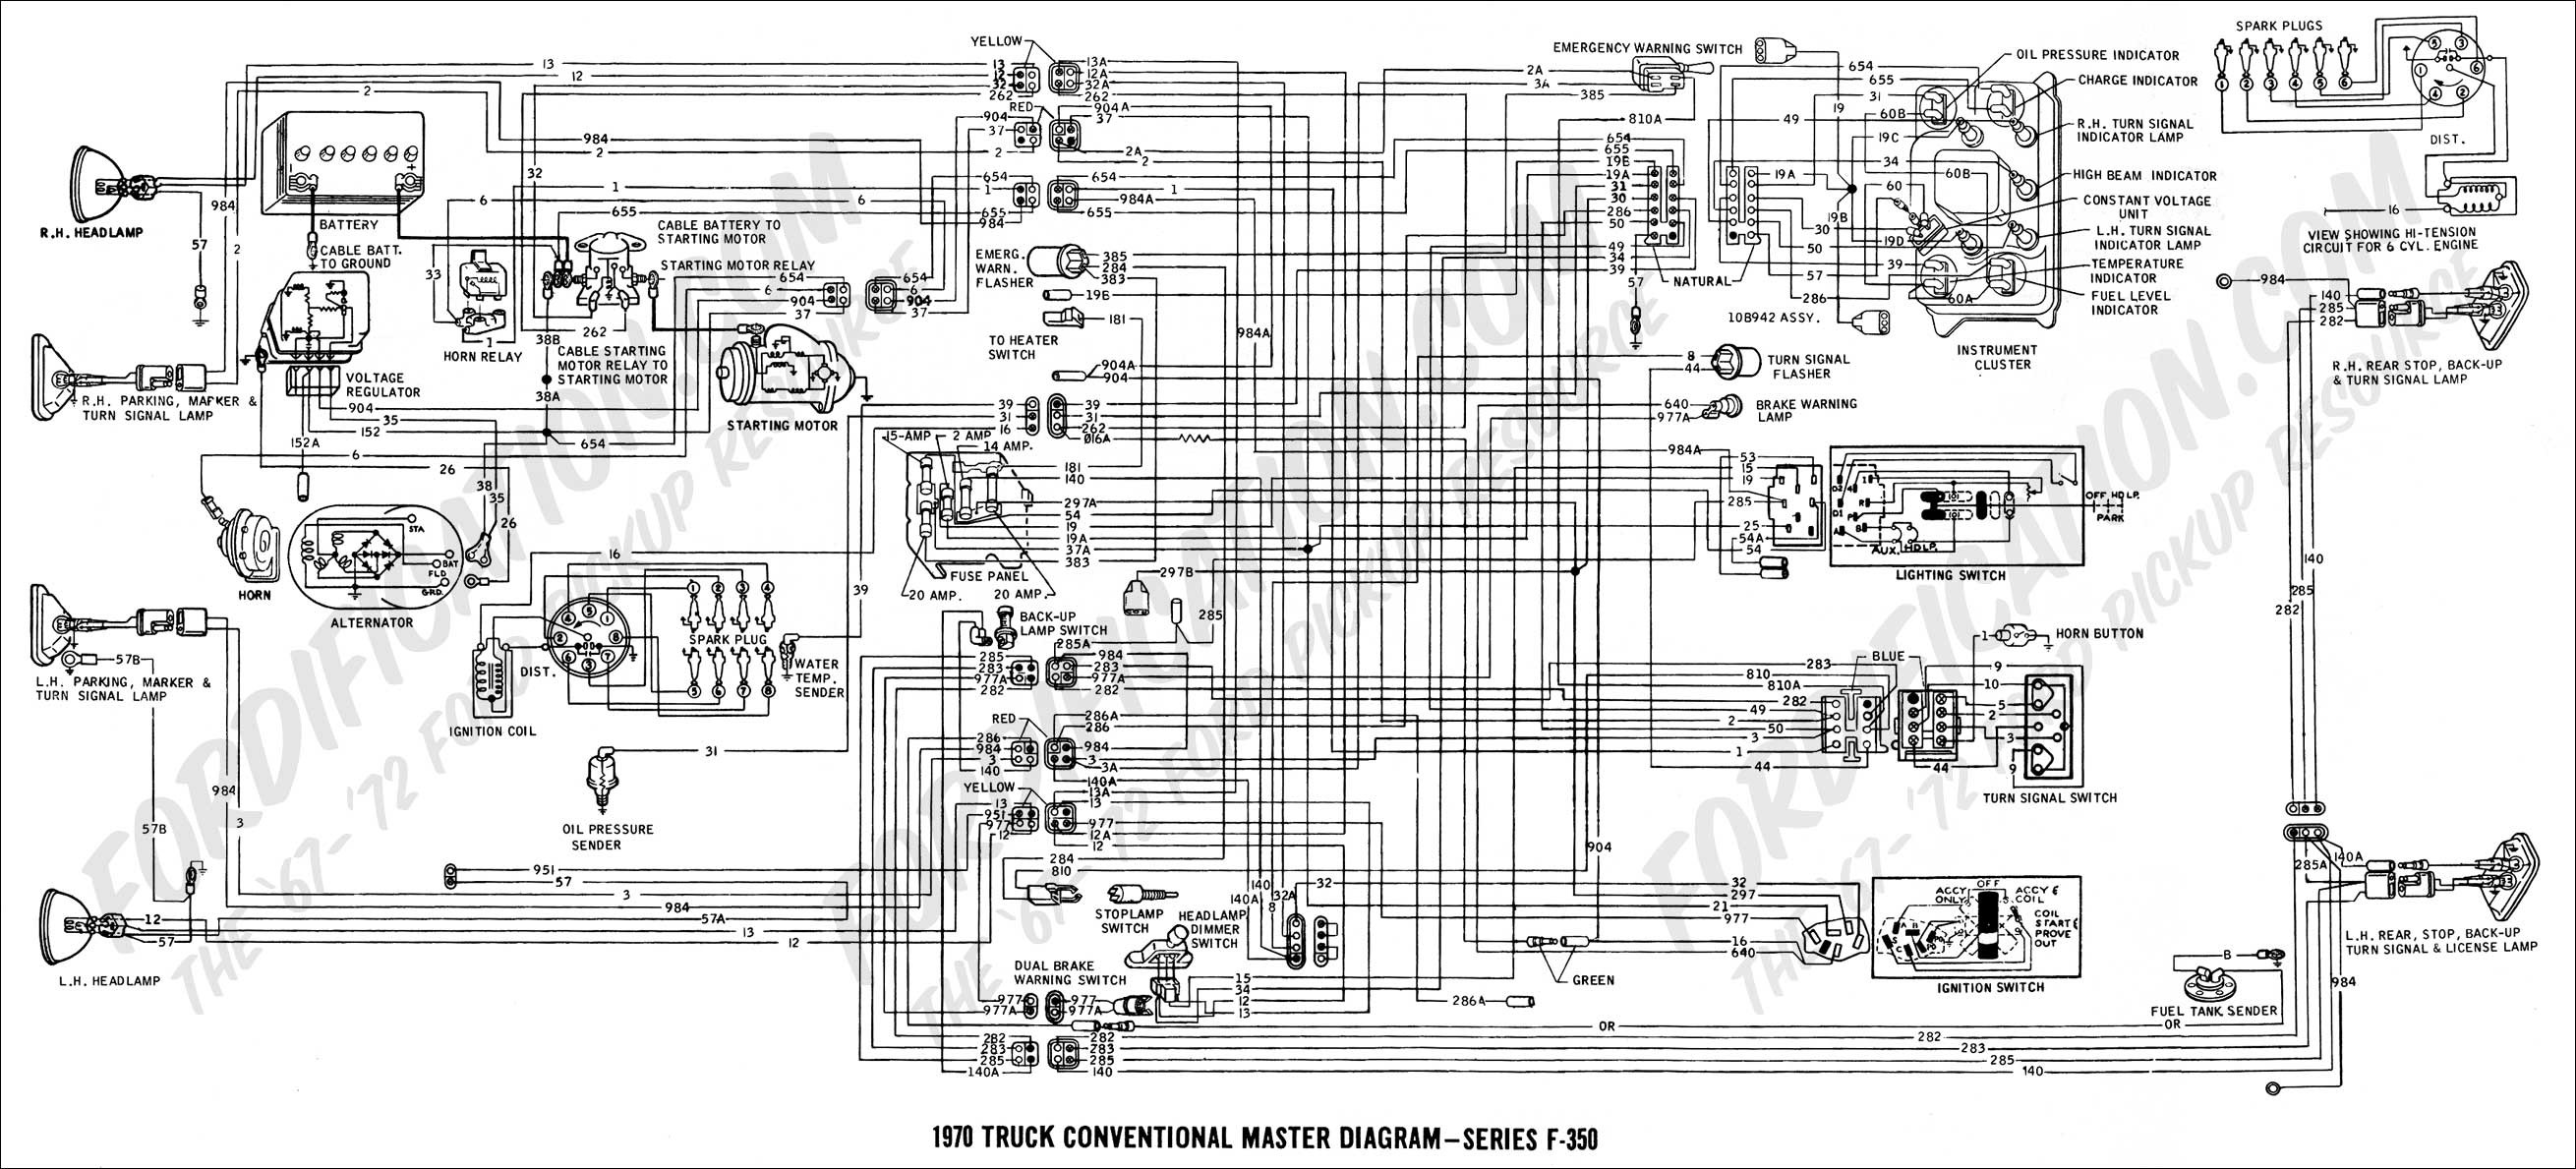 1995 ford Explorer Engine Diagram ford Truck Technical Drawings and Schematics Section H Wiring Fair Of 1995 ford Explorer Engine Diagram